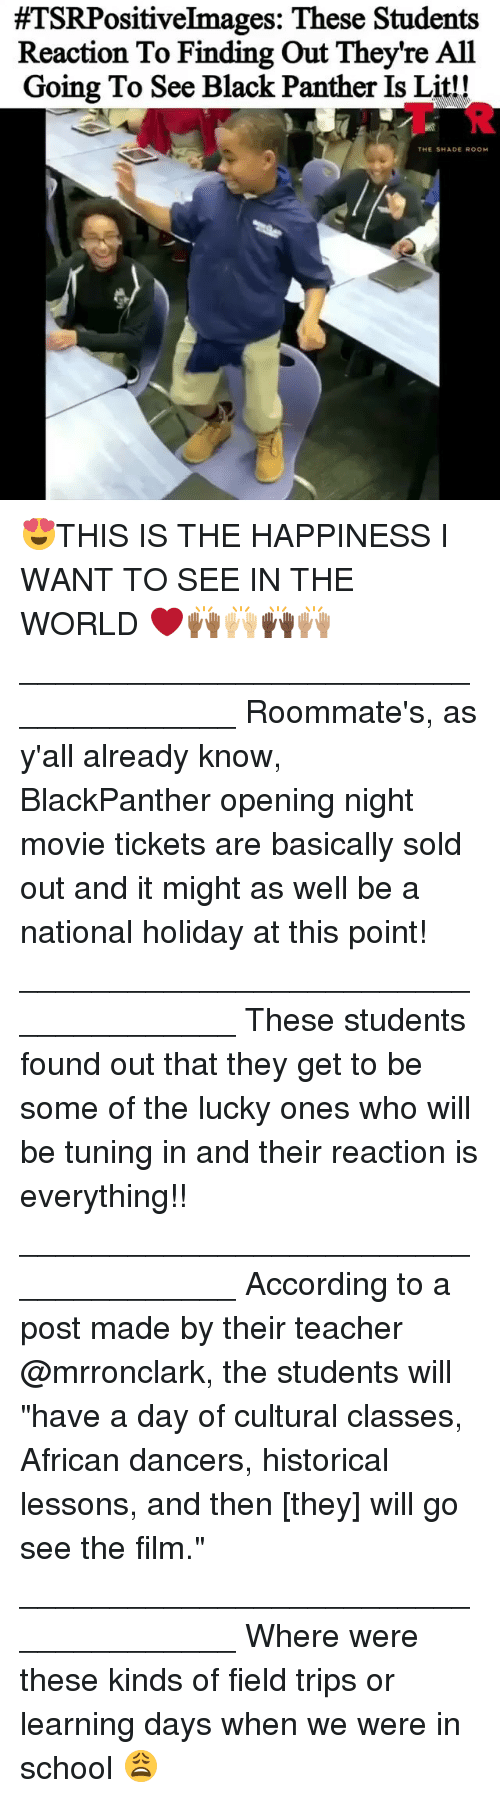 """Lit, Memes, and School:  #TSRPositiveImages: These Students  Reaction To Finding Out They're All  Going To See Black Panther Is Lit!!  AT R  THE SHADE ROOM 😍THIS IS THE HAPPINESS I WANT TO SEE IN THE WORLD ❤️🙌🏾🙌🏼🙌🏿🙌🏽 _____________________________________ Roommate's, as y'all already know, BlackPanther opening night movie tickets are basically sold out and it might as well be a national holiday at this point! _____________________________________ These students found out that they get to be some of the lucky ones who will be tuning in and their reaction is everything!! _____________________________________ According to a post made by their teacher @mrronclark, the students will """"have a day of cultural classes, African dancers, historical lessons, and then [they] will go see the film."""" _____________________________________ Where were these kinds of field trips or learning days when we were in school 😩"""